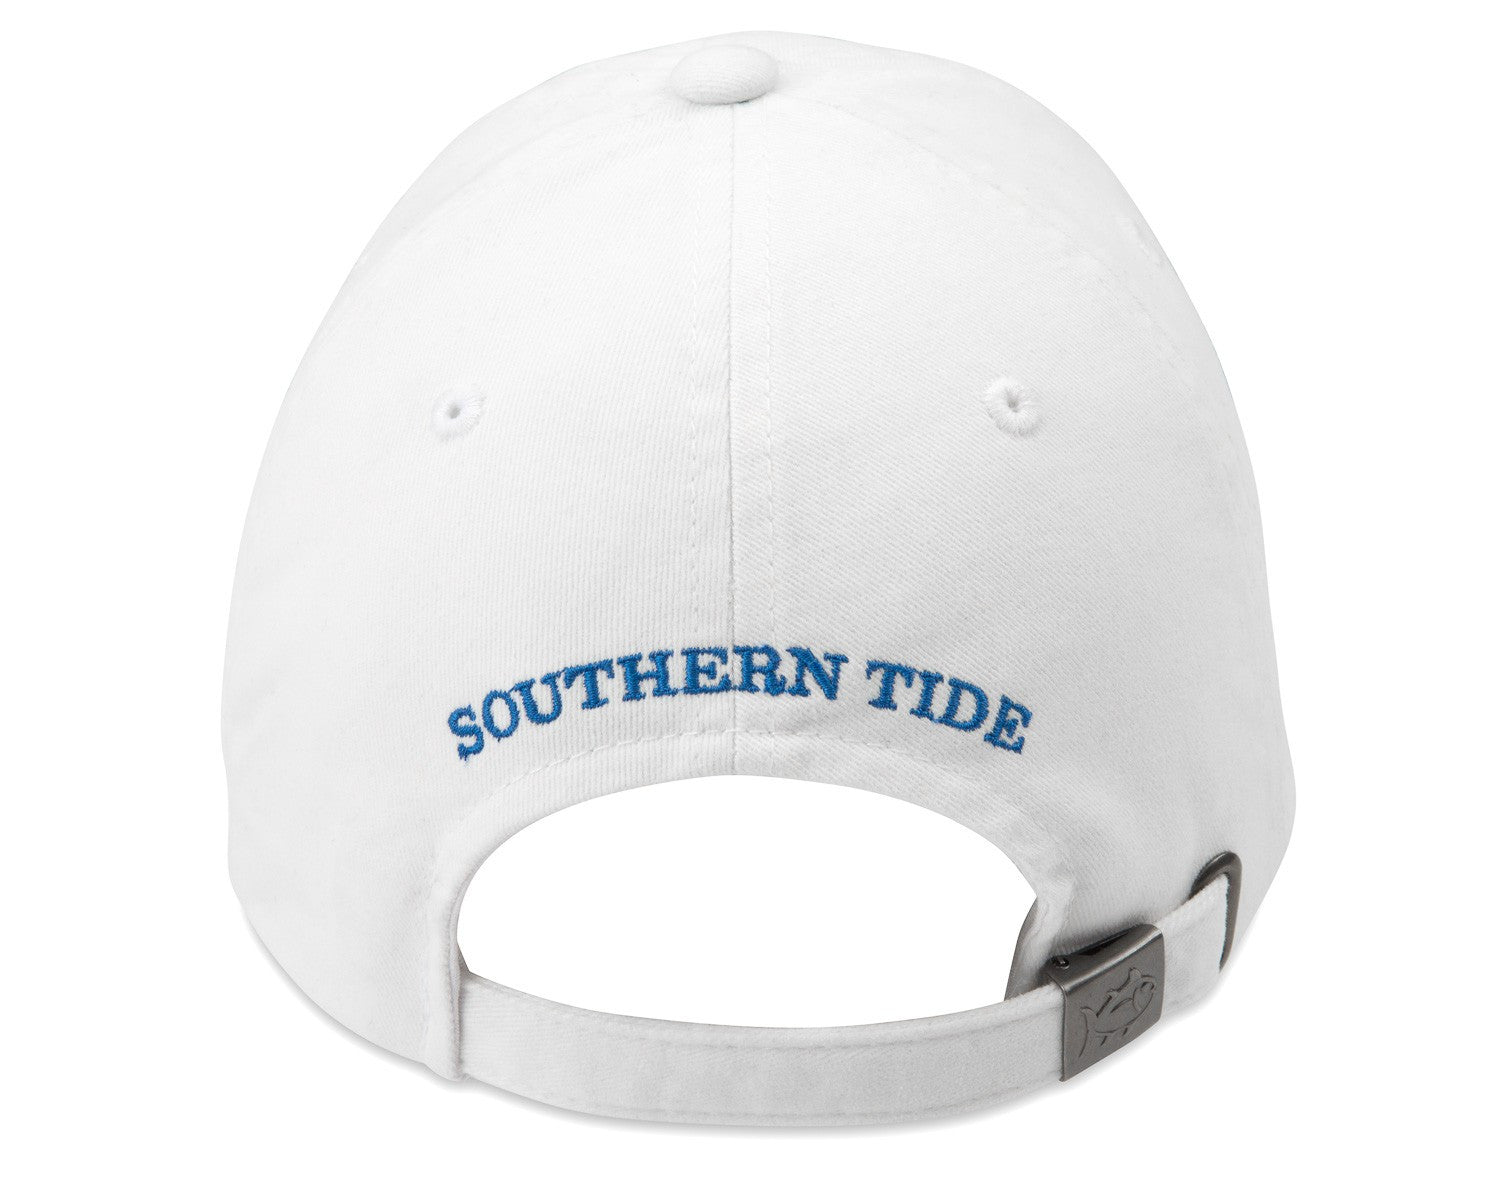 Southern Tide Original Skipjack Hat in White by Southern Tide from THE LUCKY KNOT - 2